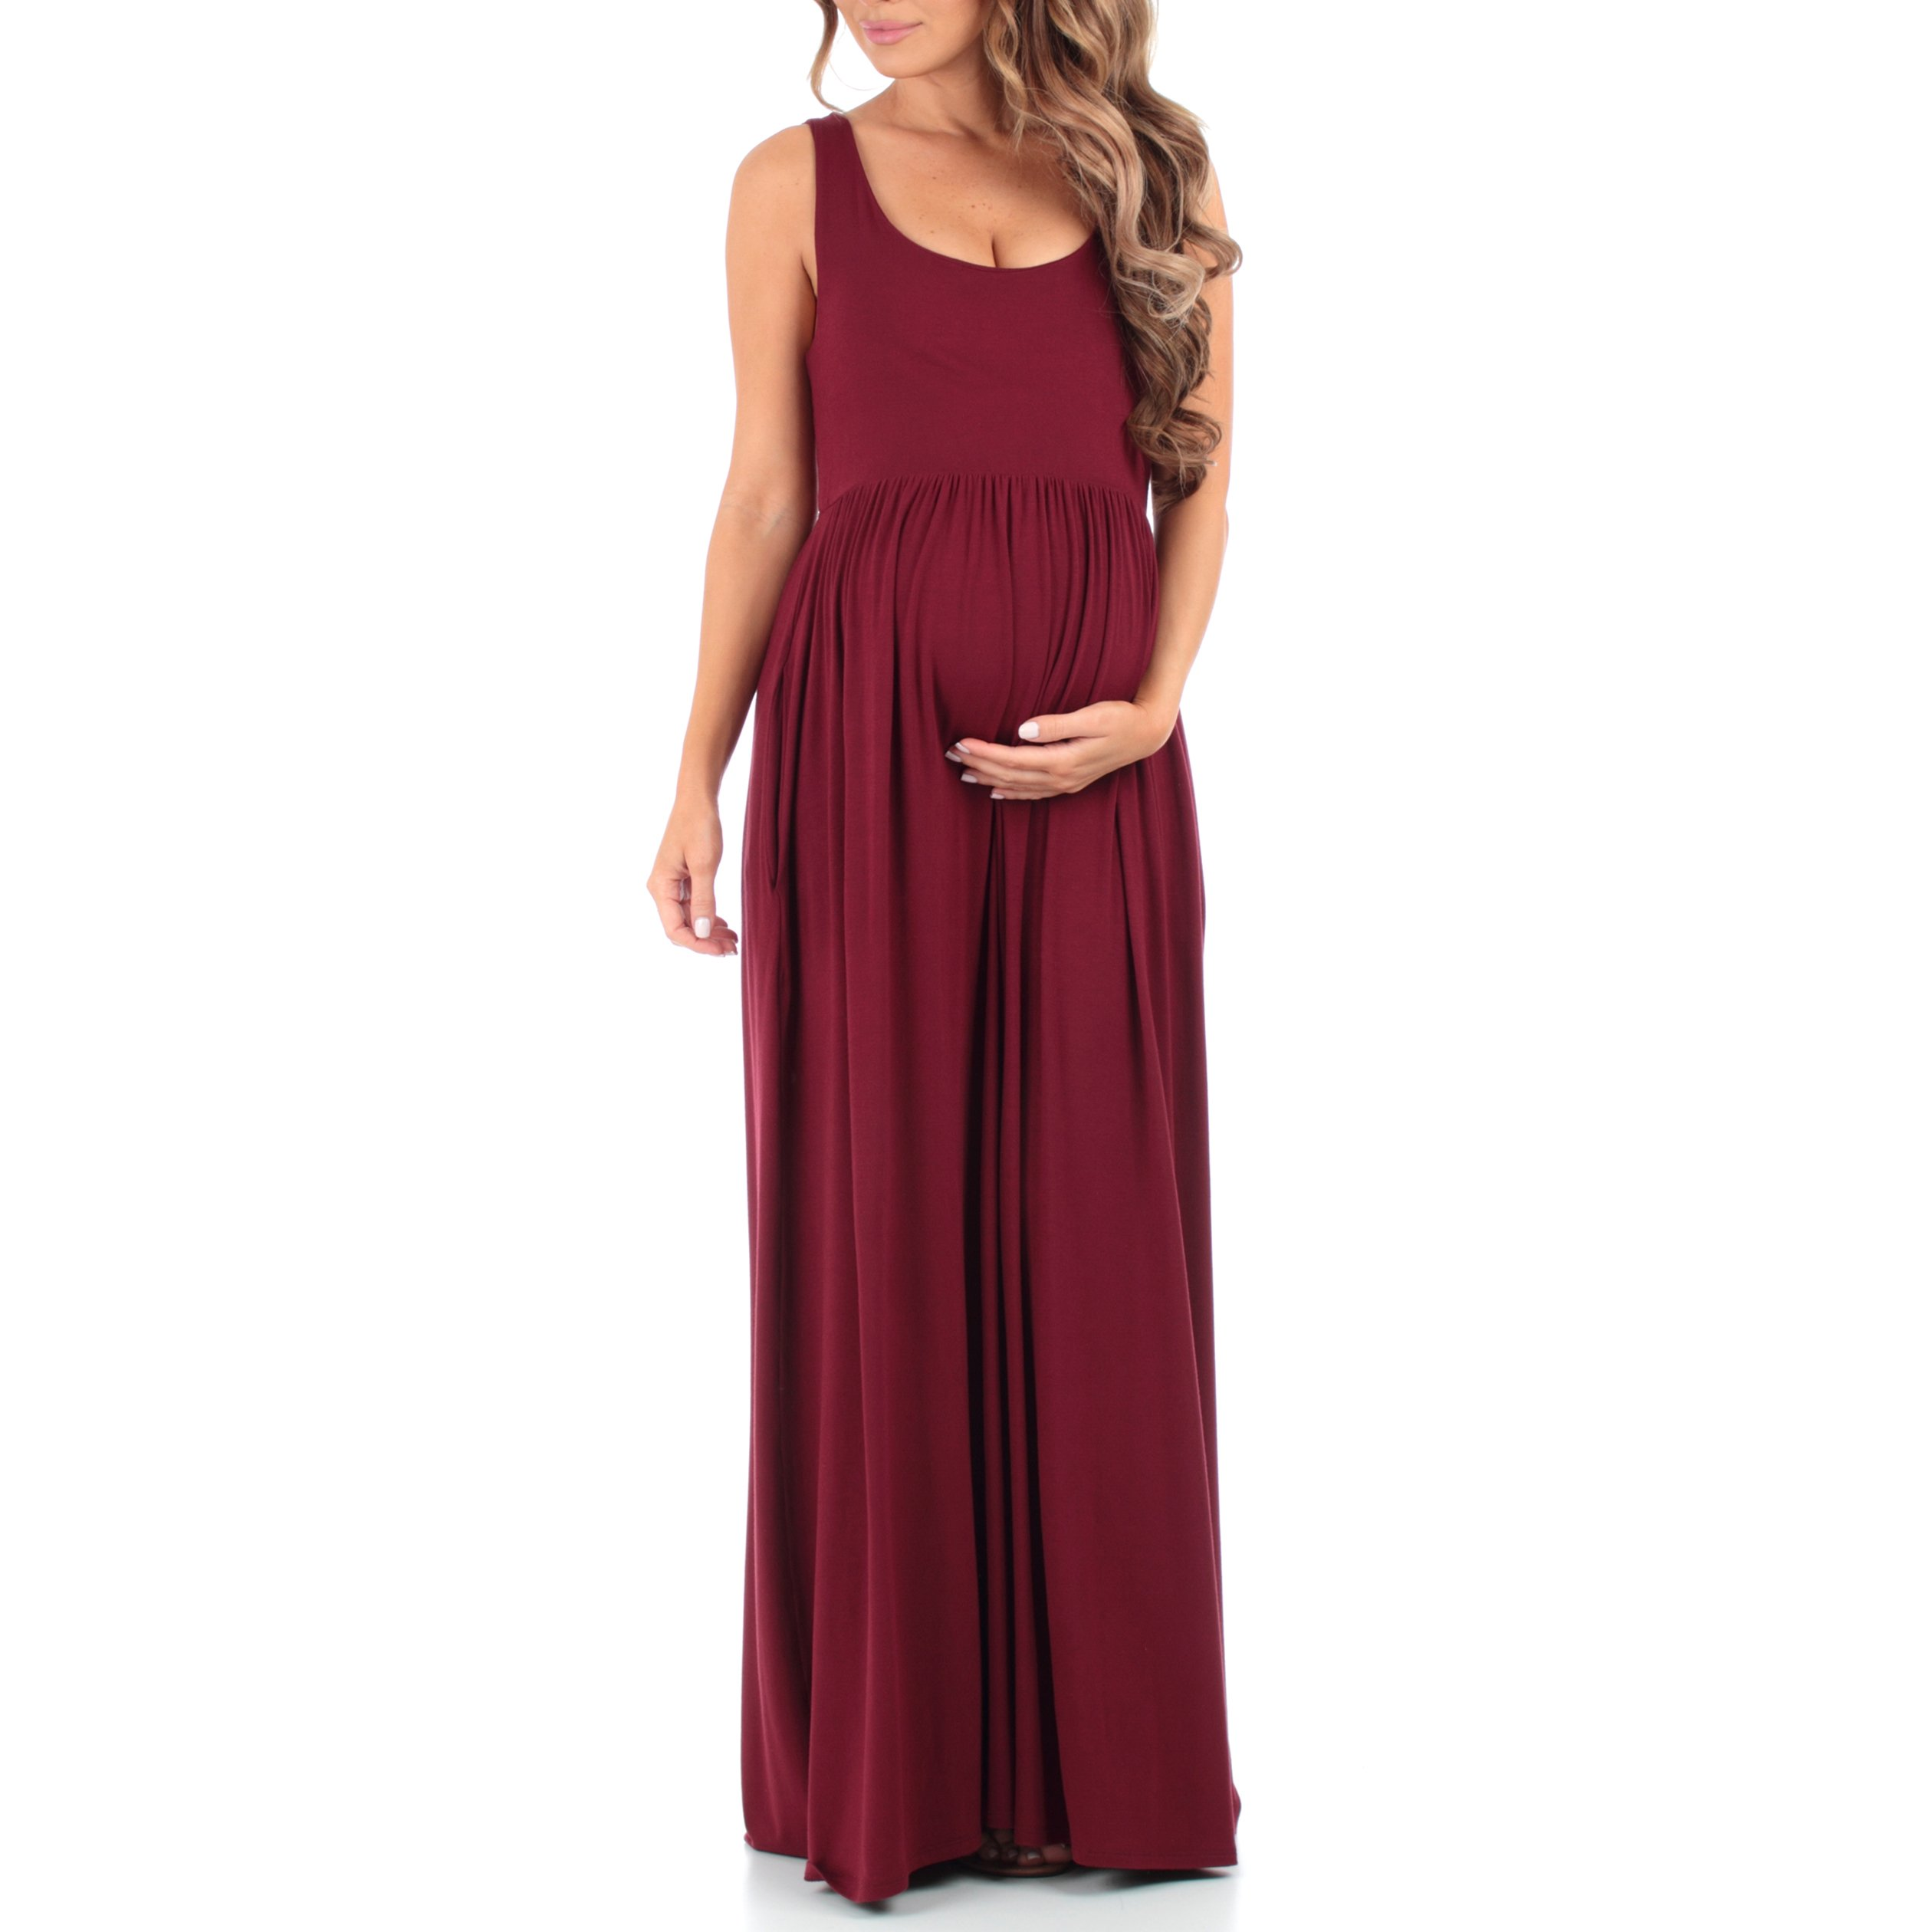 Womens Sleevless Ruched Maternity Dress with Pockets by Mother Bee - Made in USA Burgundy Large